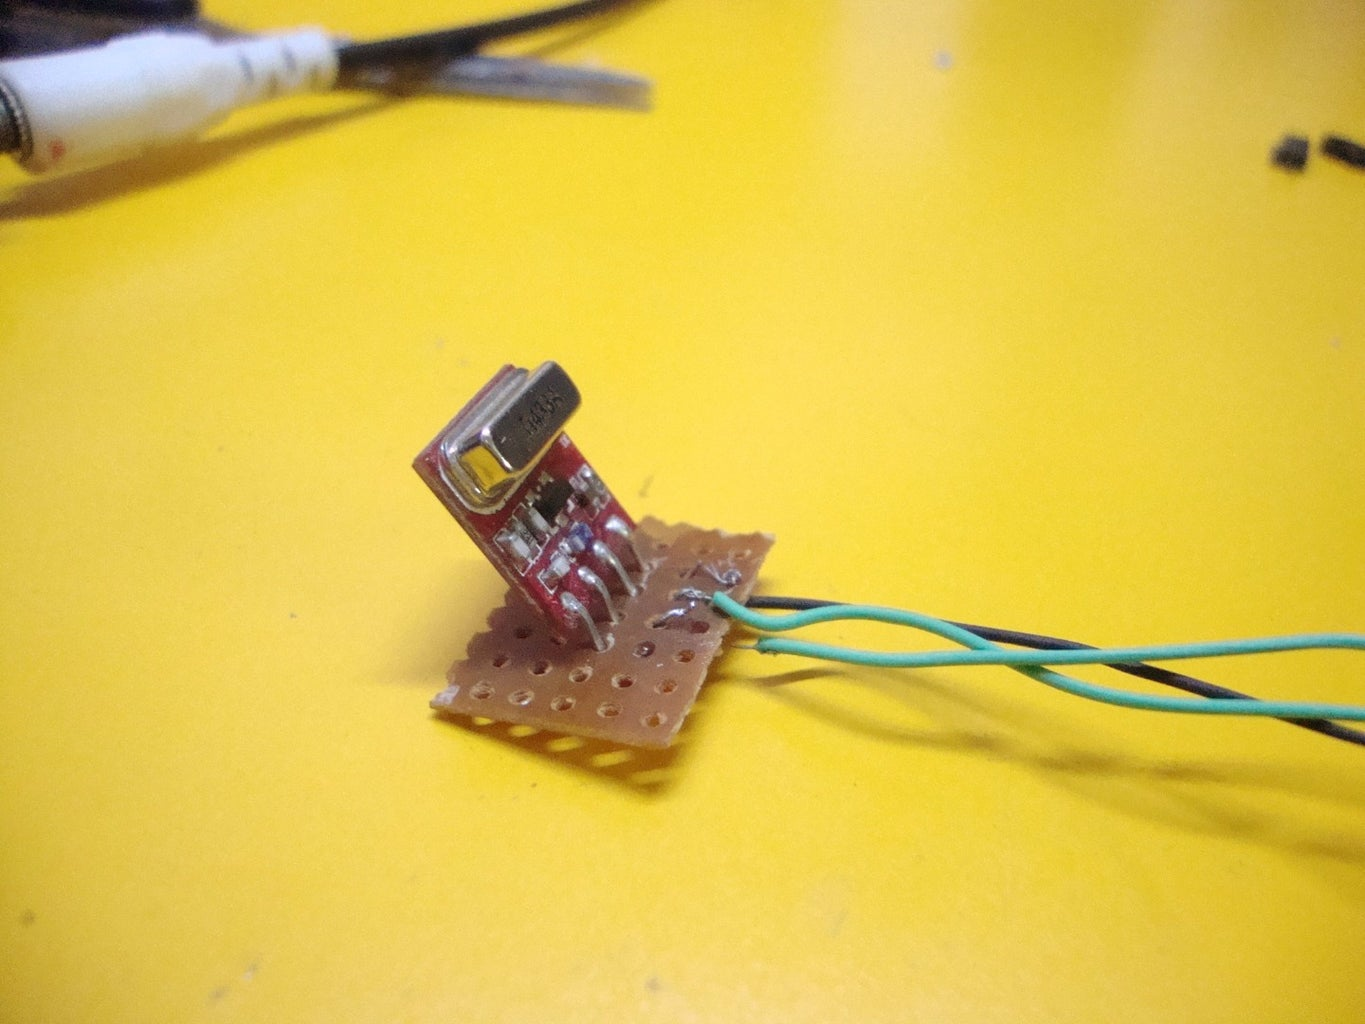 Making the Transmitter: Connect the RF Transmitter Module